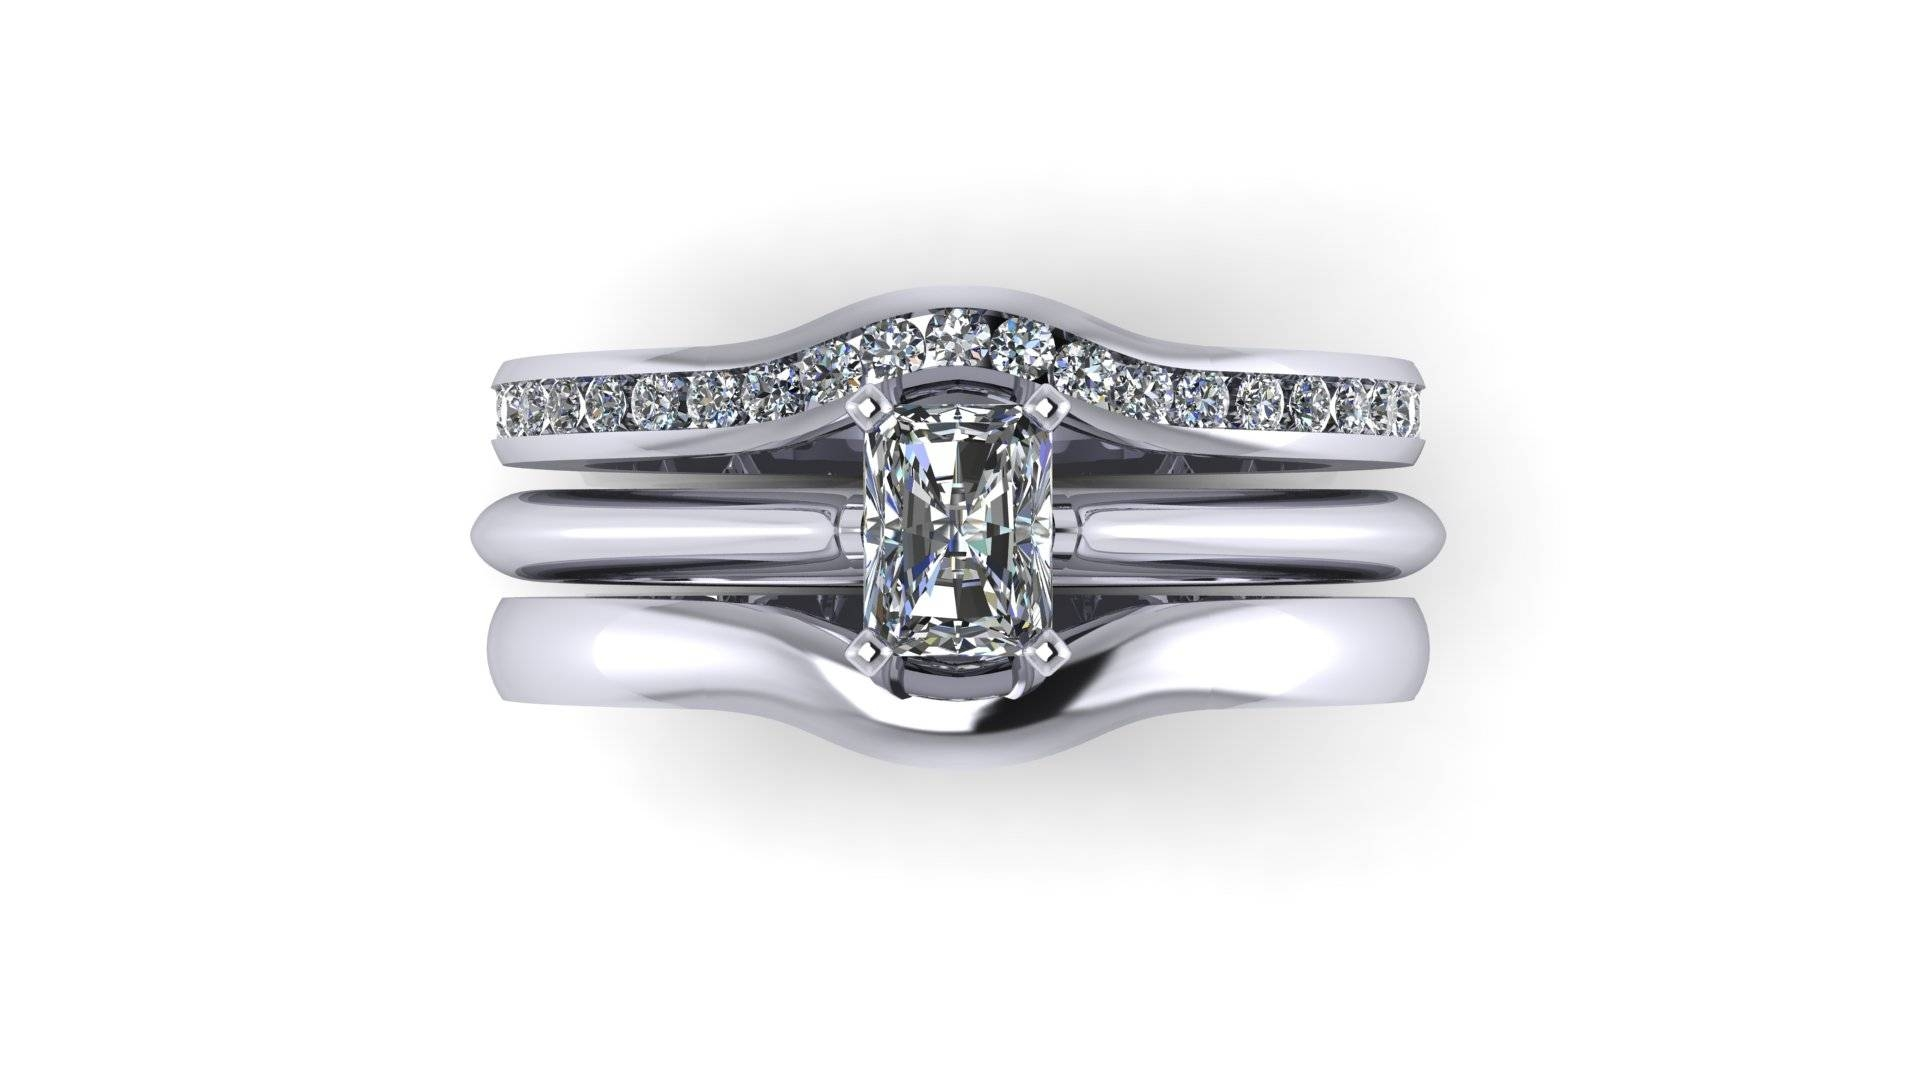 Wedding Rings : Wedding Band For Emerald Cut Engagement Ring Pertaining To Wedding Band That Fits Around Engagement Rings (View 12 of 15)